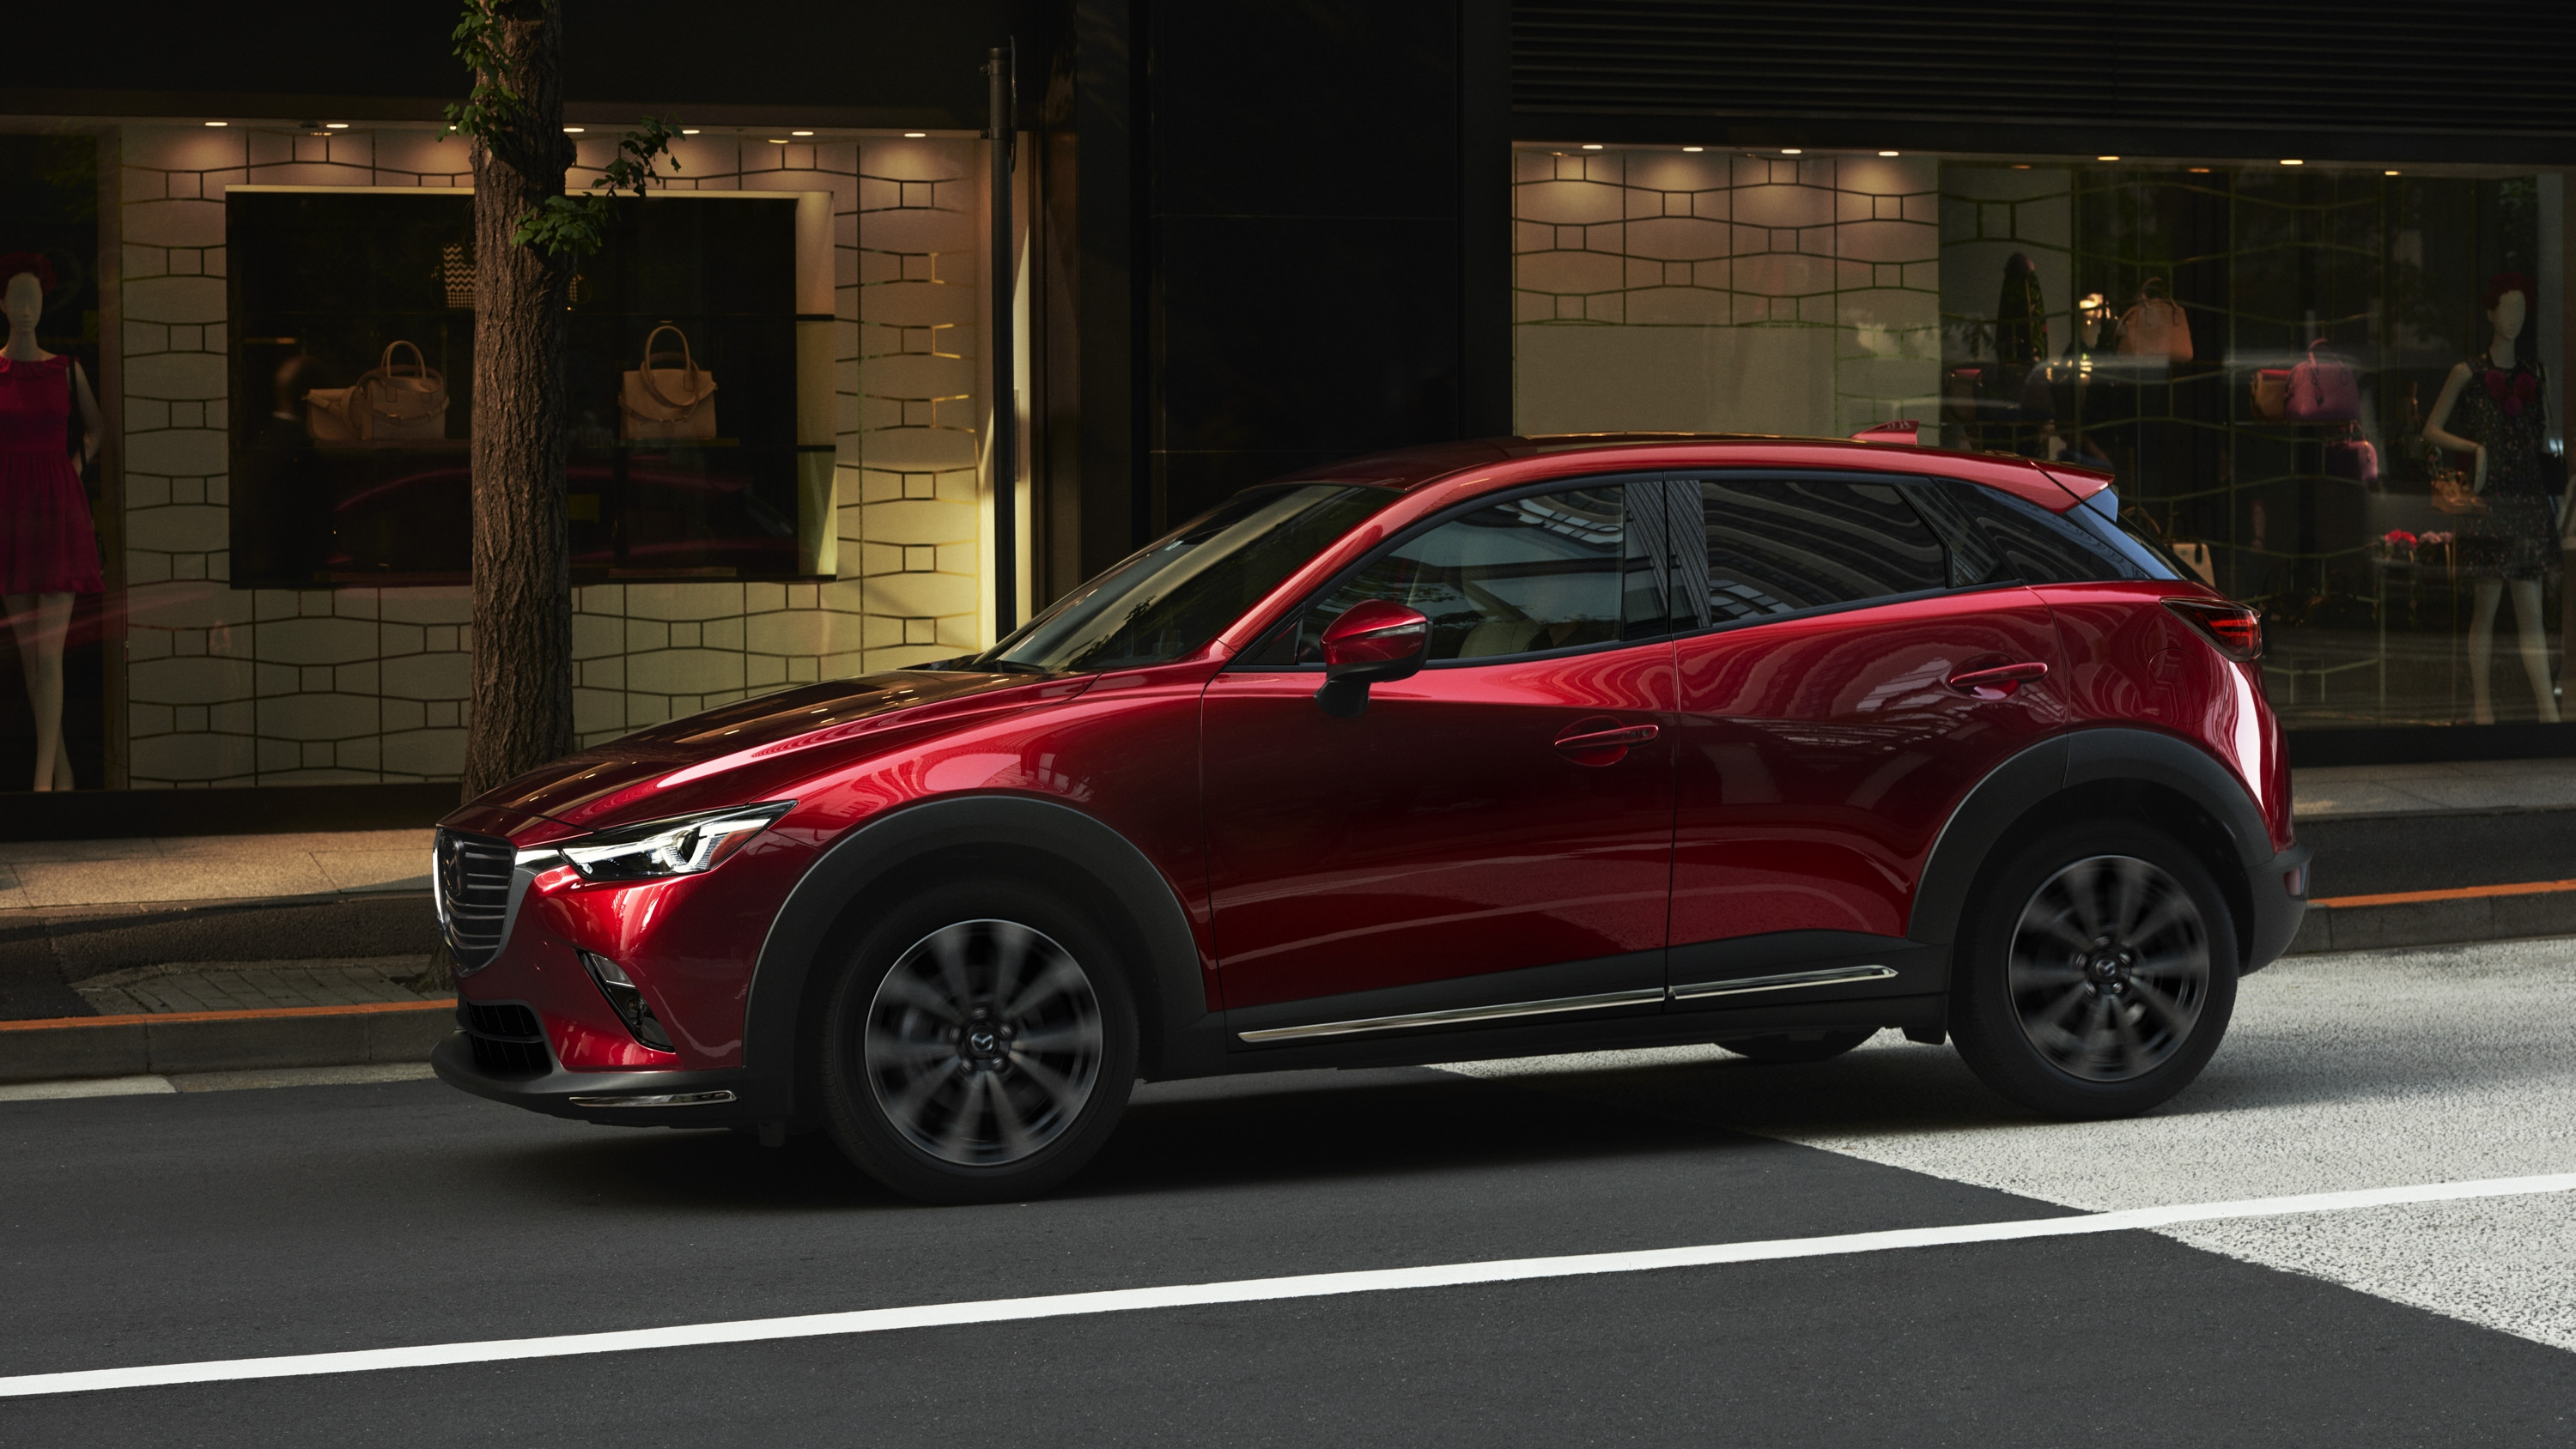 Top 5 Fastest Cars >> 2019 Mazda CX-3 | Top Speed